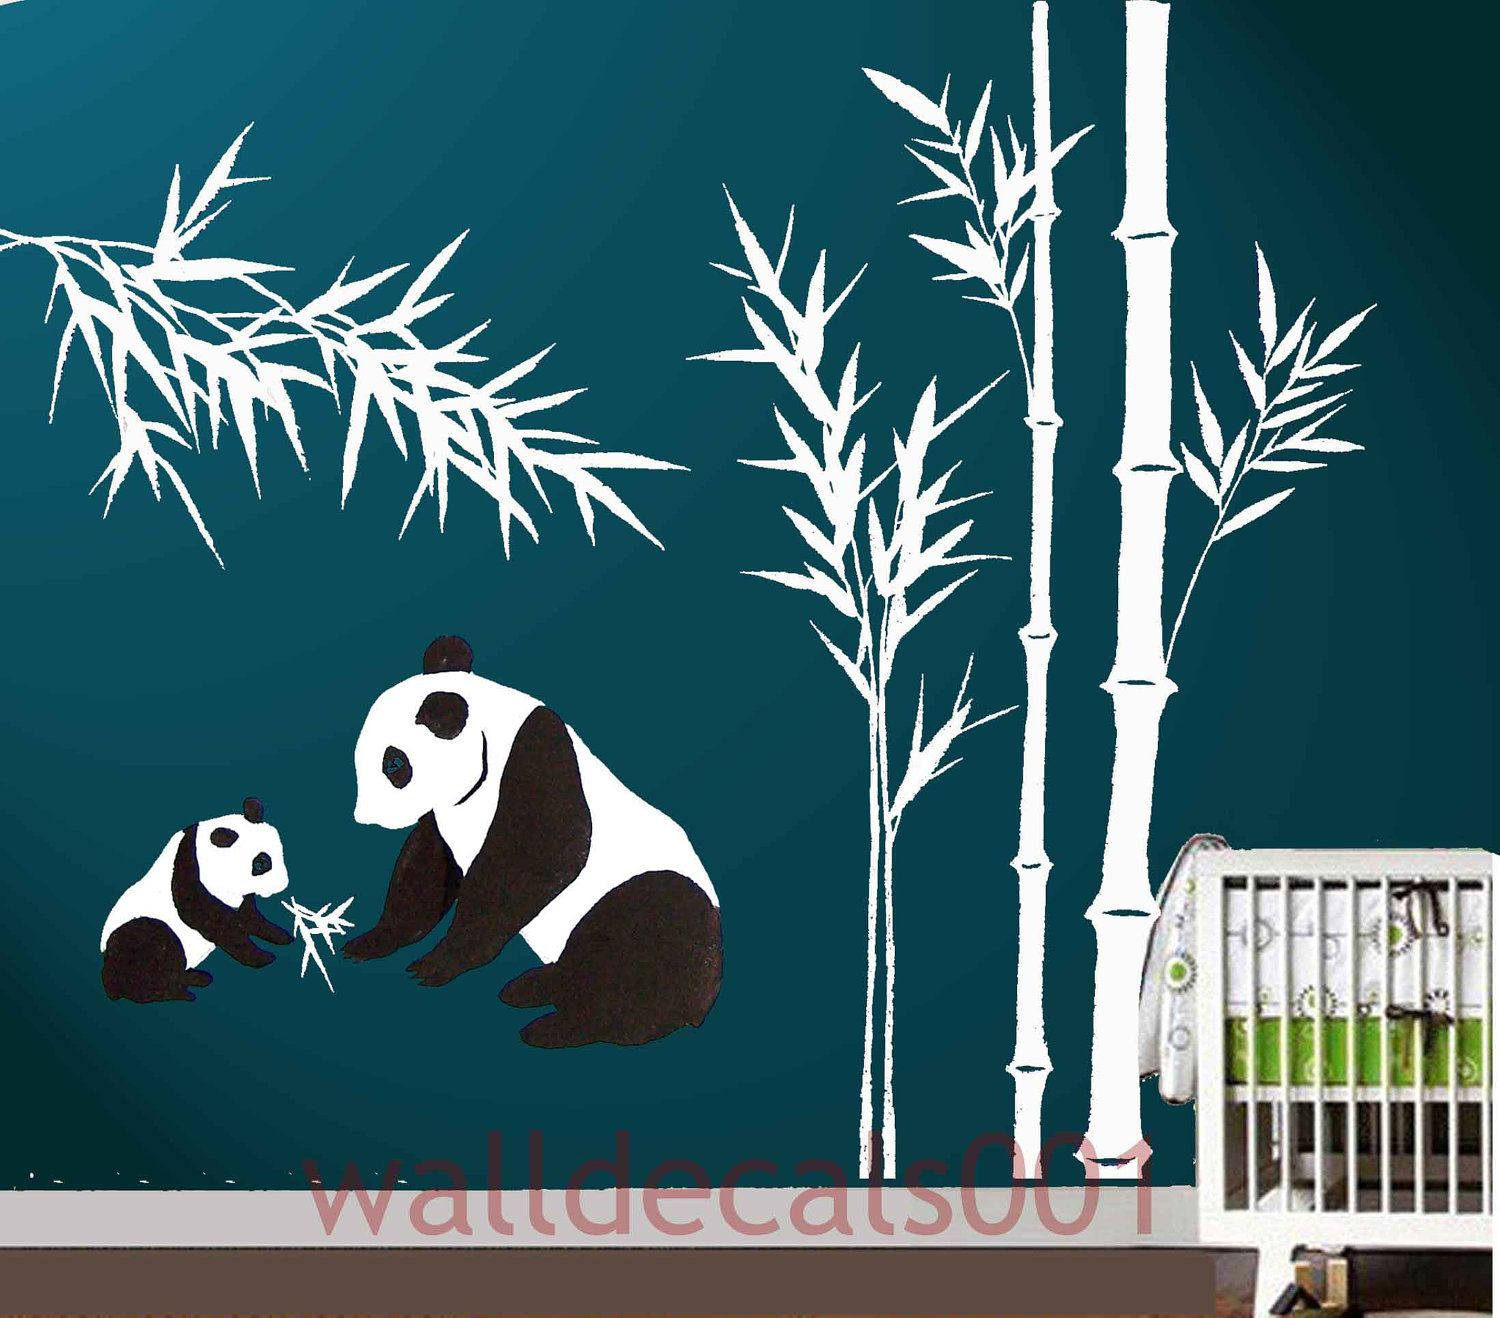 Bamboo wall decals murals images home wall decoration ideas bamboo wall decals murals choice image home wall decoration ideas bamboo wall decals murals image collections home wall decoration bamboo wall decals murals amipublicfo Gallery